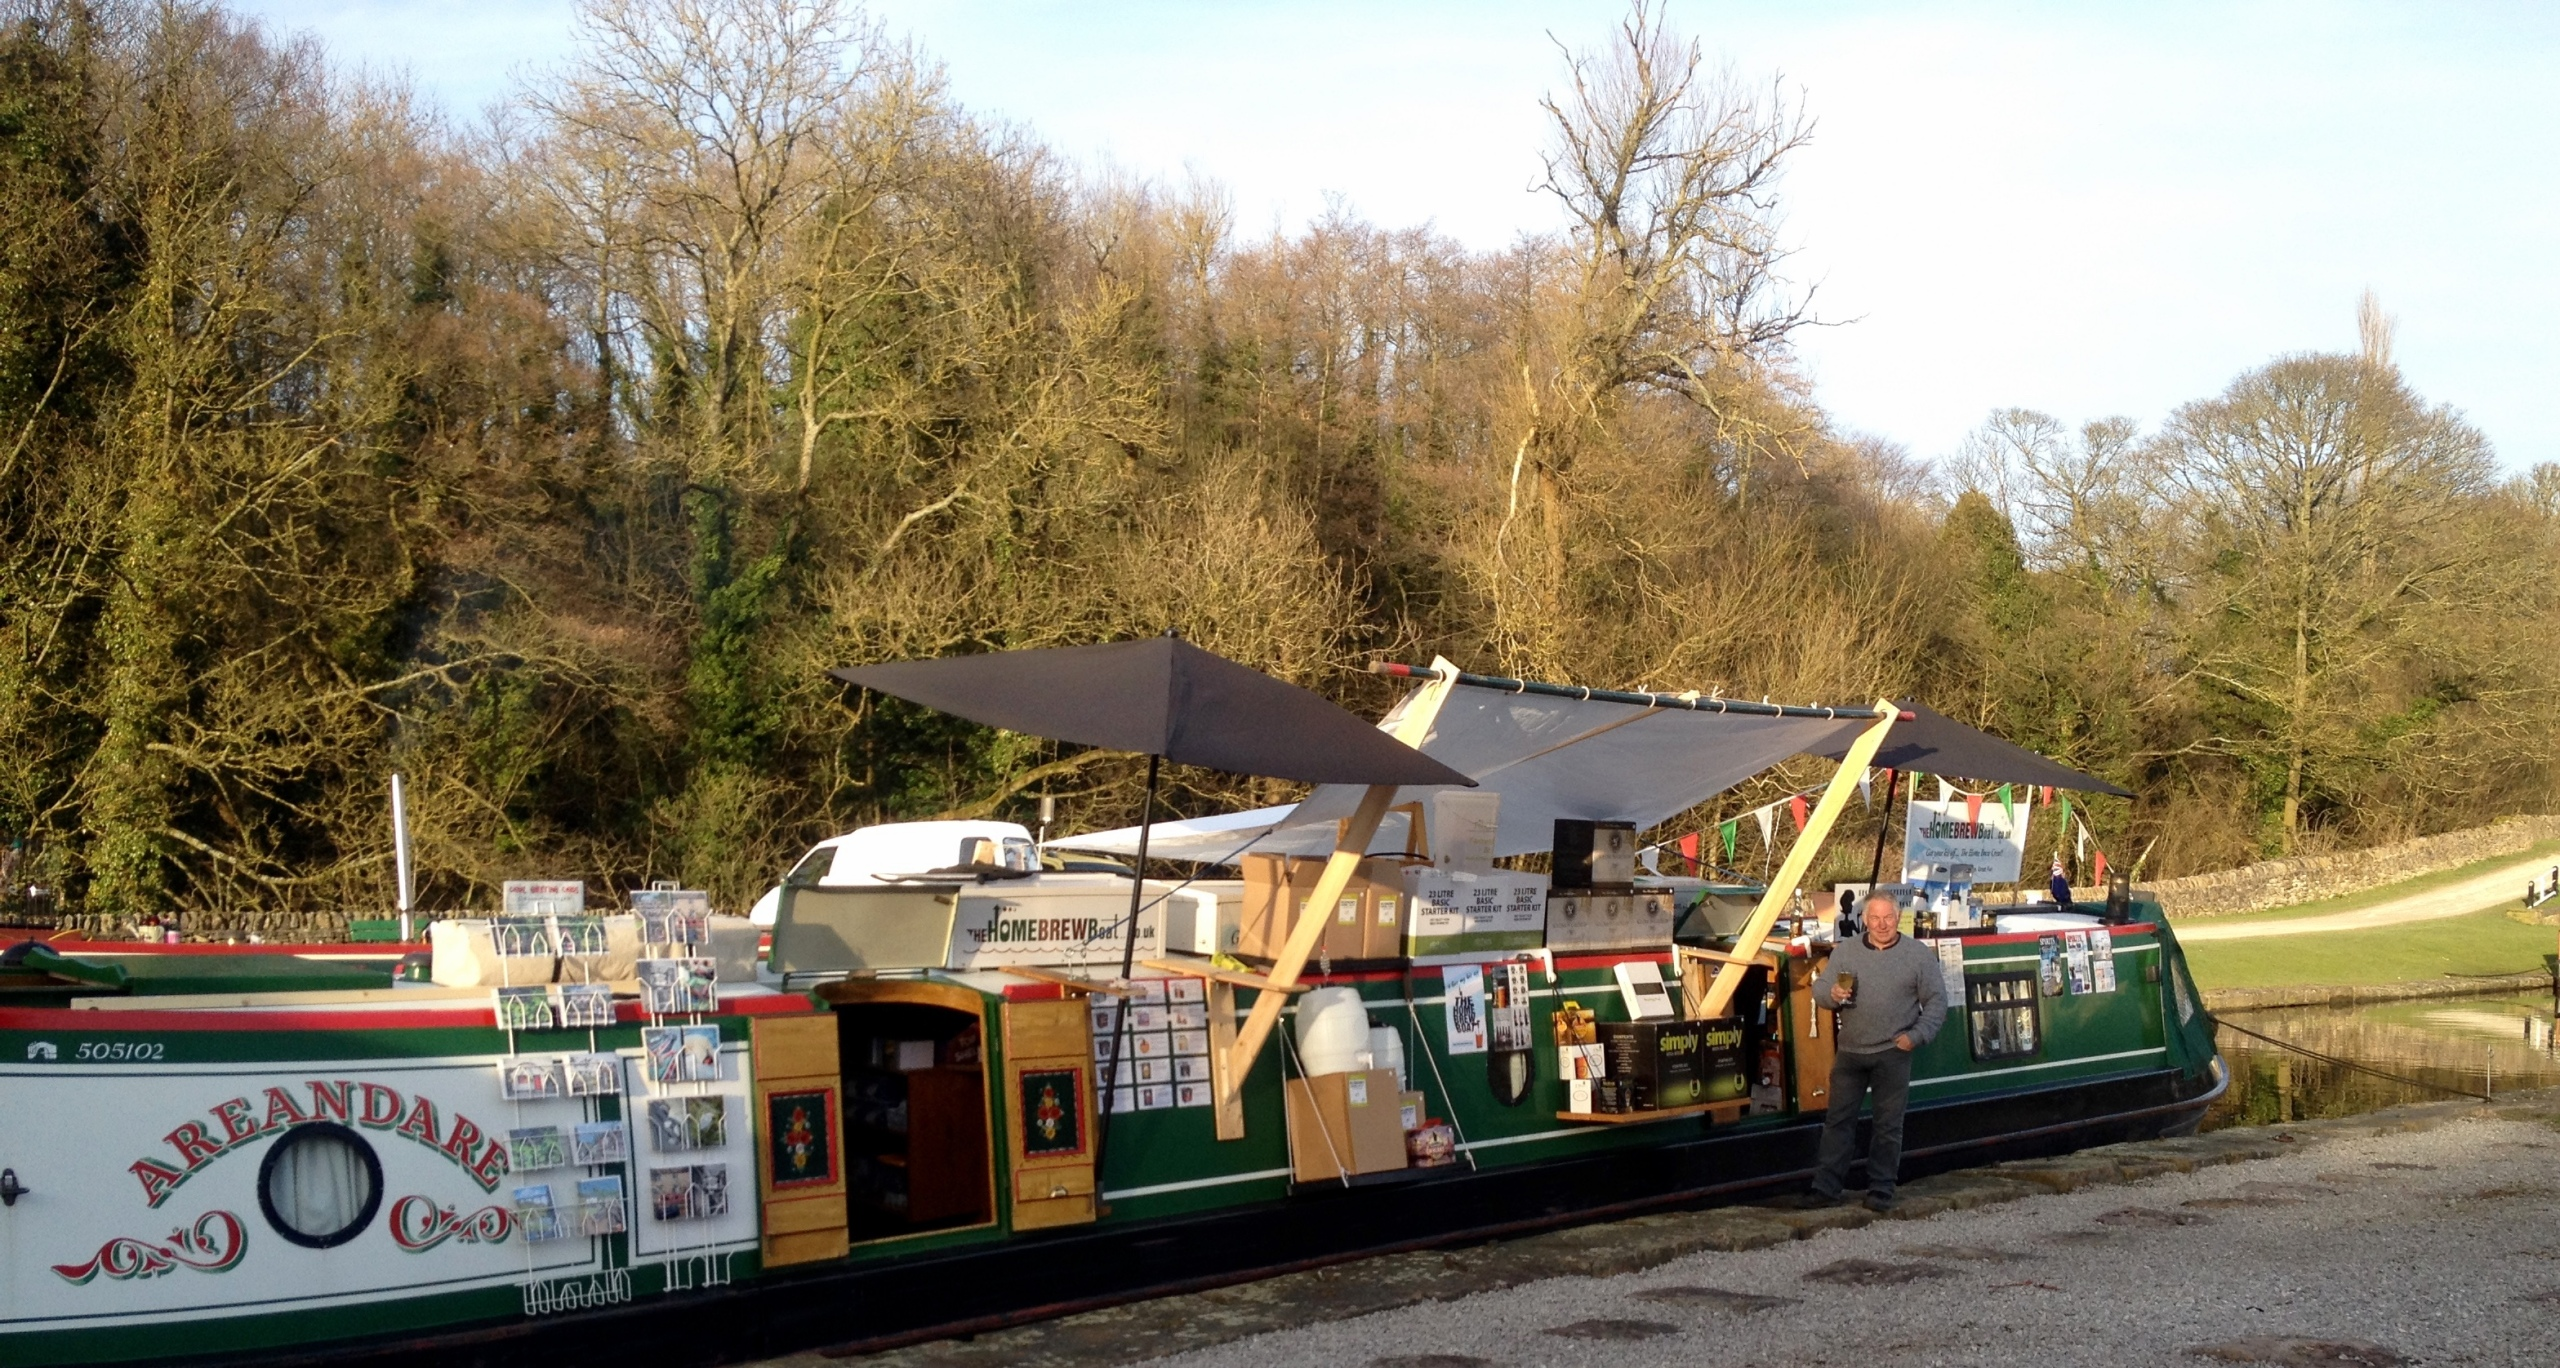 The Home Brew Boat at Bugsworth Basin